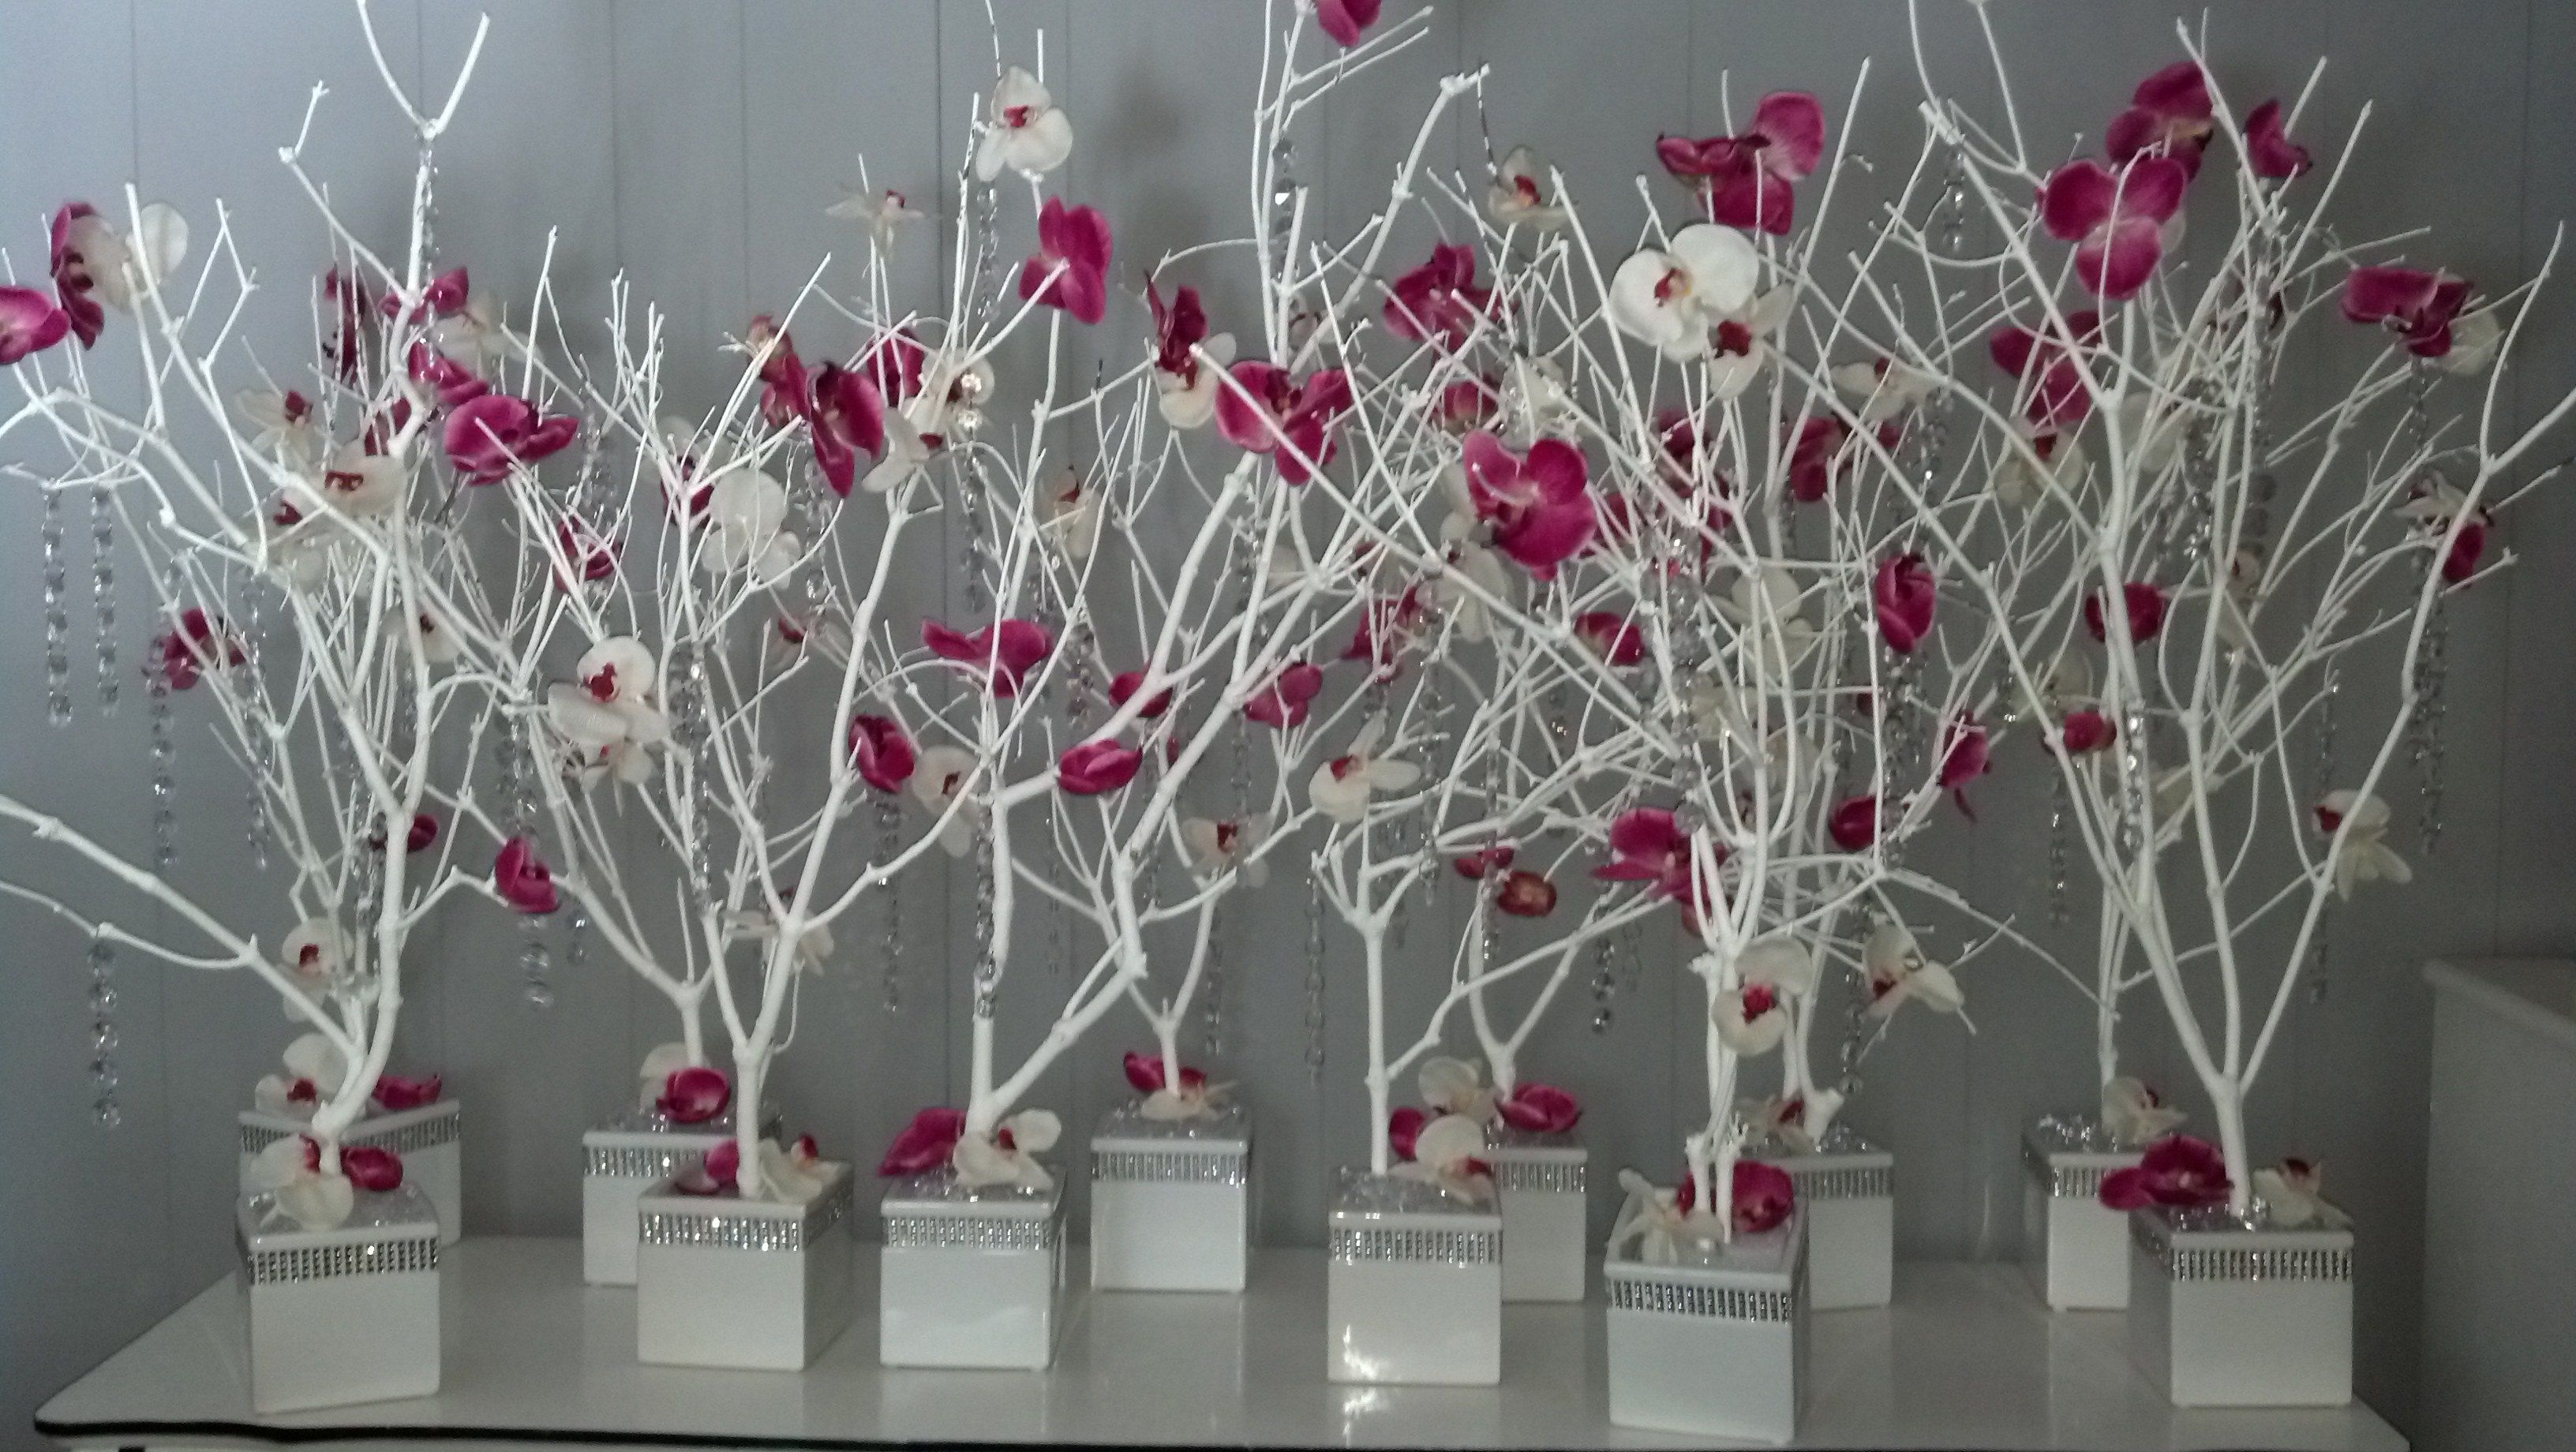 Diy tree centerpiece tutorial weddingbee do it yourself wedding diy tree centerpiece tutorial weddingbee do it yourself solutioingenieria